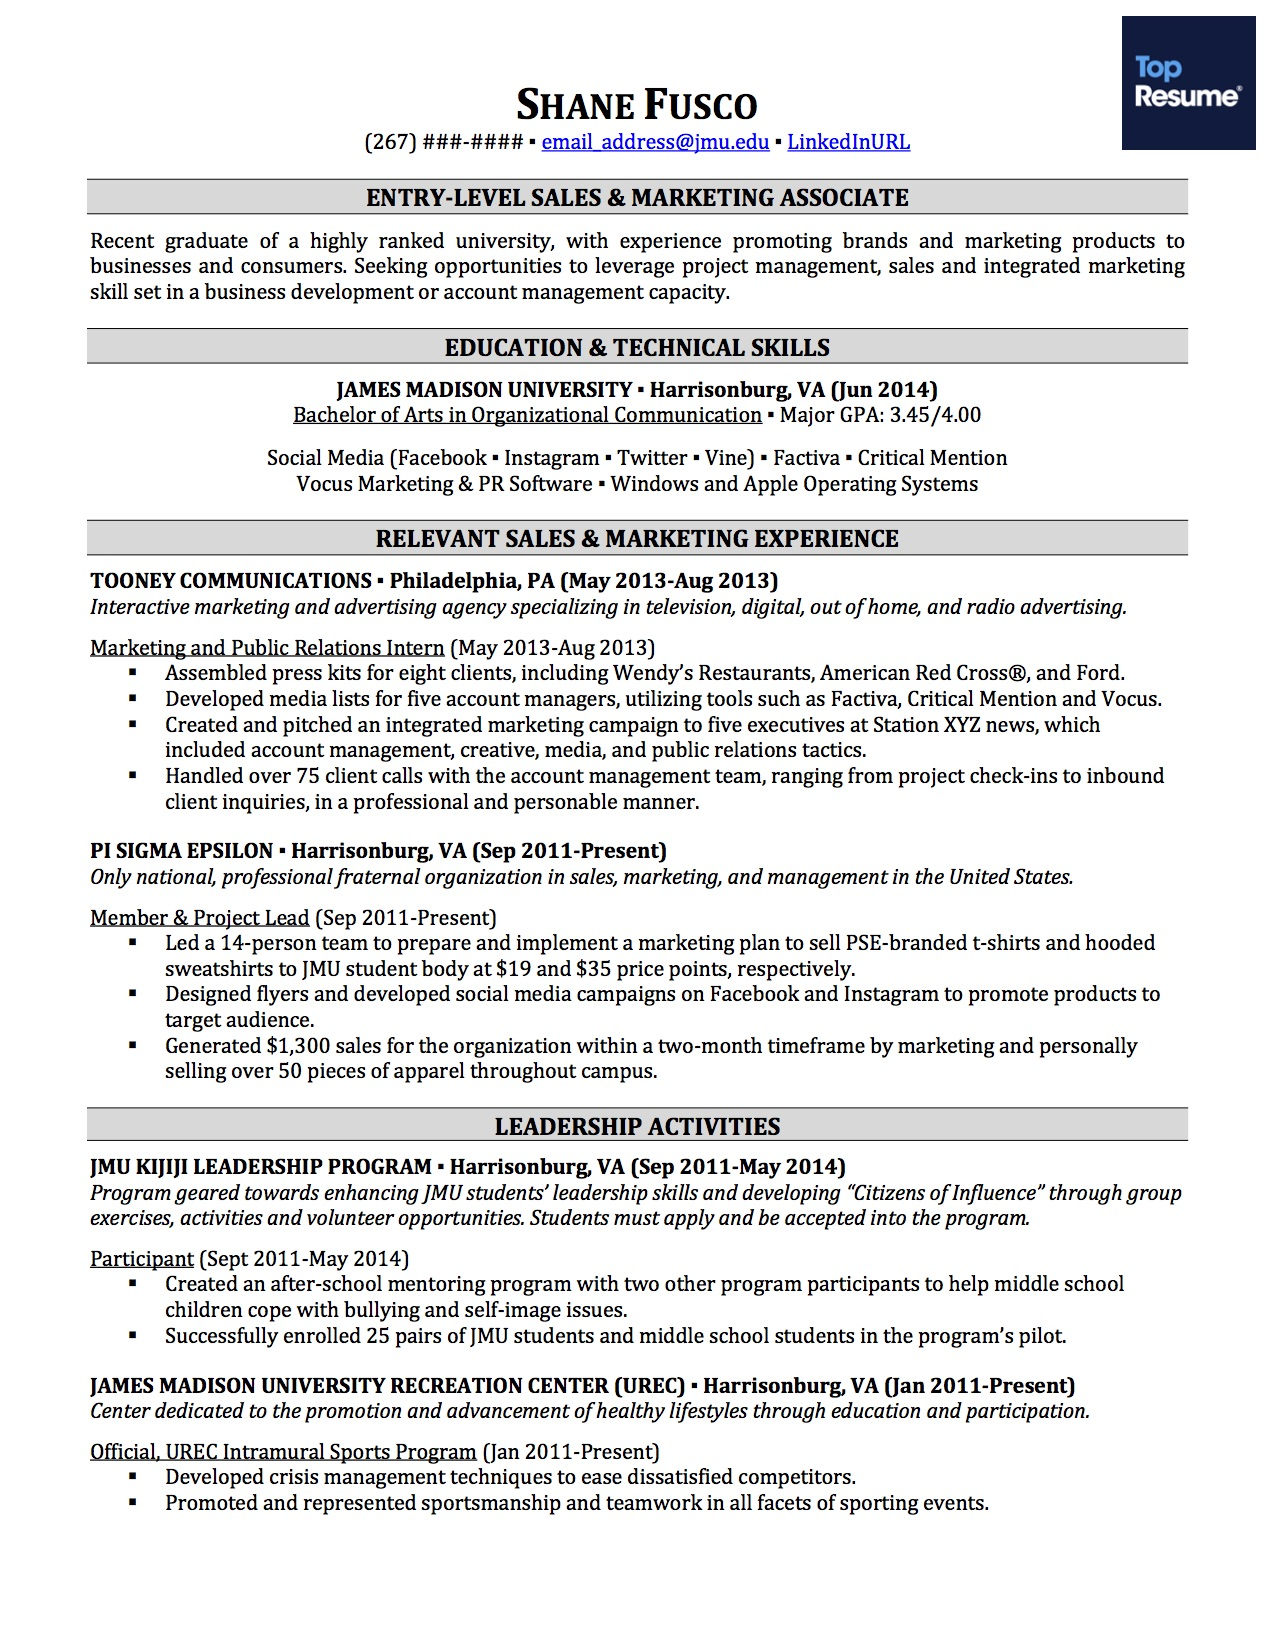 decide on a resume format - Top Resume